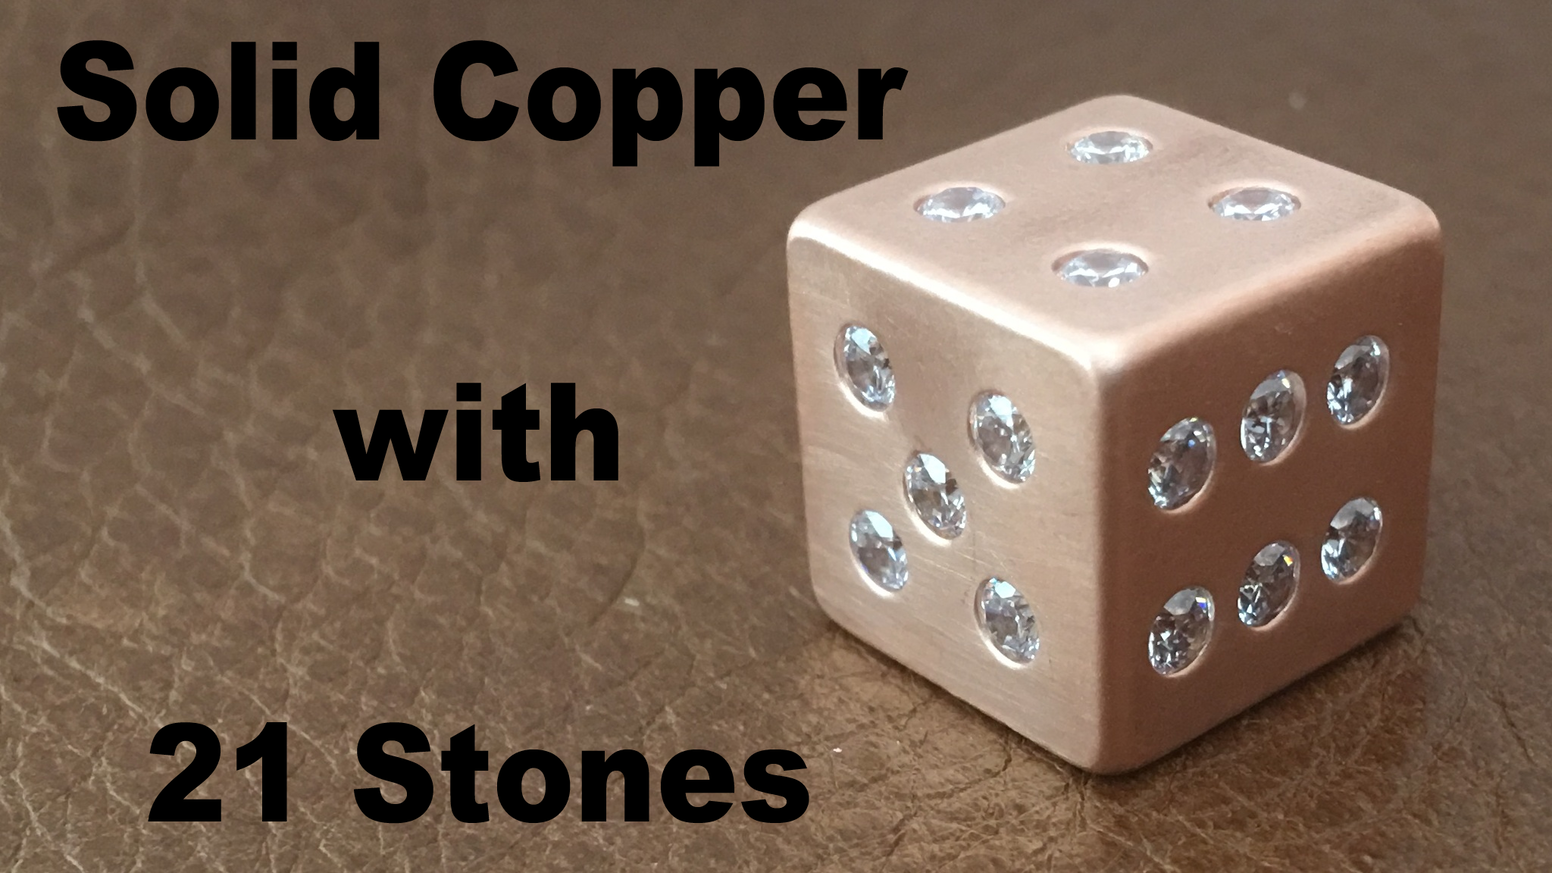 You don't need to even roll these dice to make your opponents think twice! Conquer your next game night with these One-of-a-kind dice.